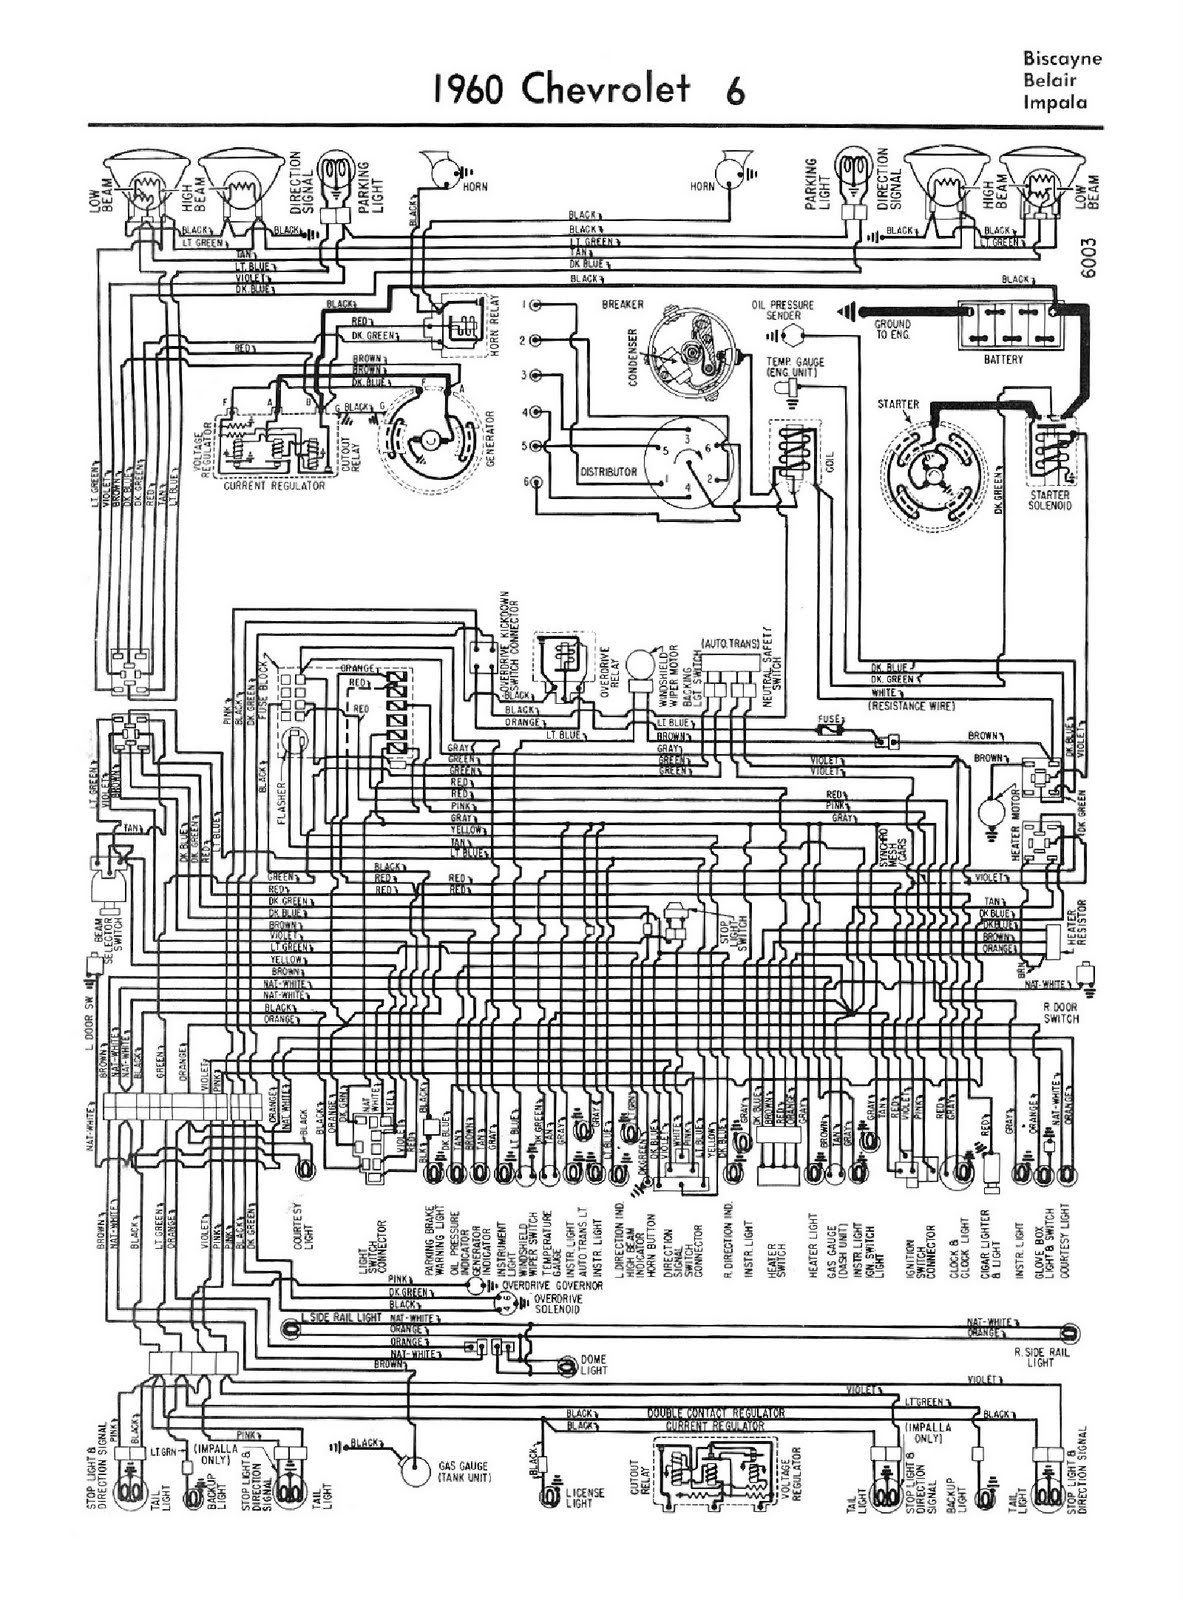 Biscayne Wiring Diagram  DIY Wiring Diagram Schematic - Chevy malibu wiring diagram